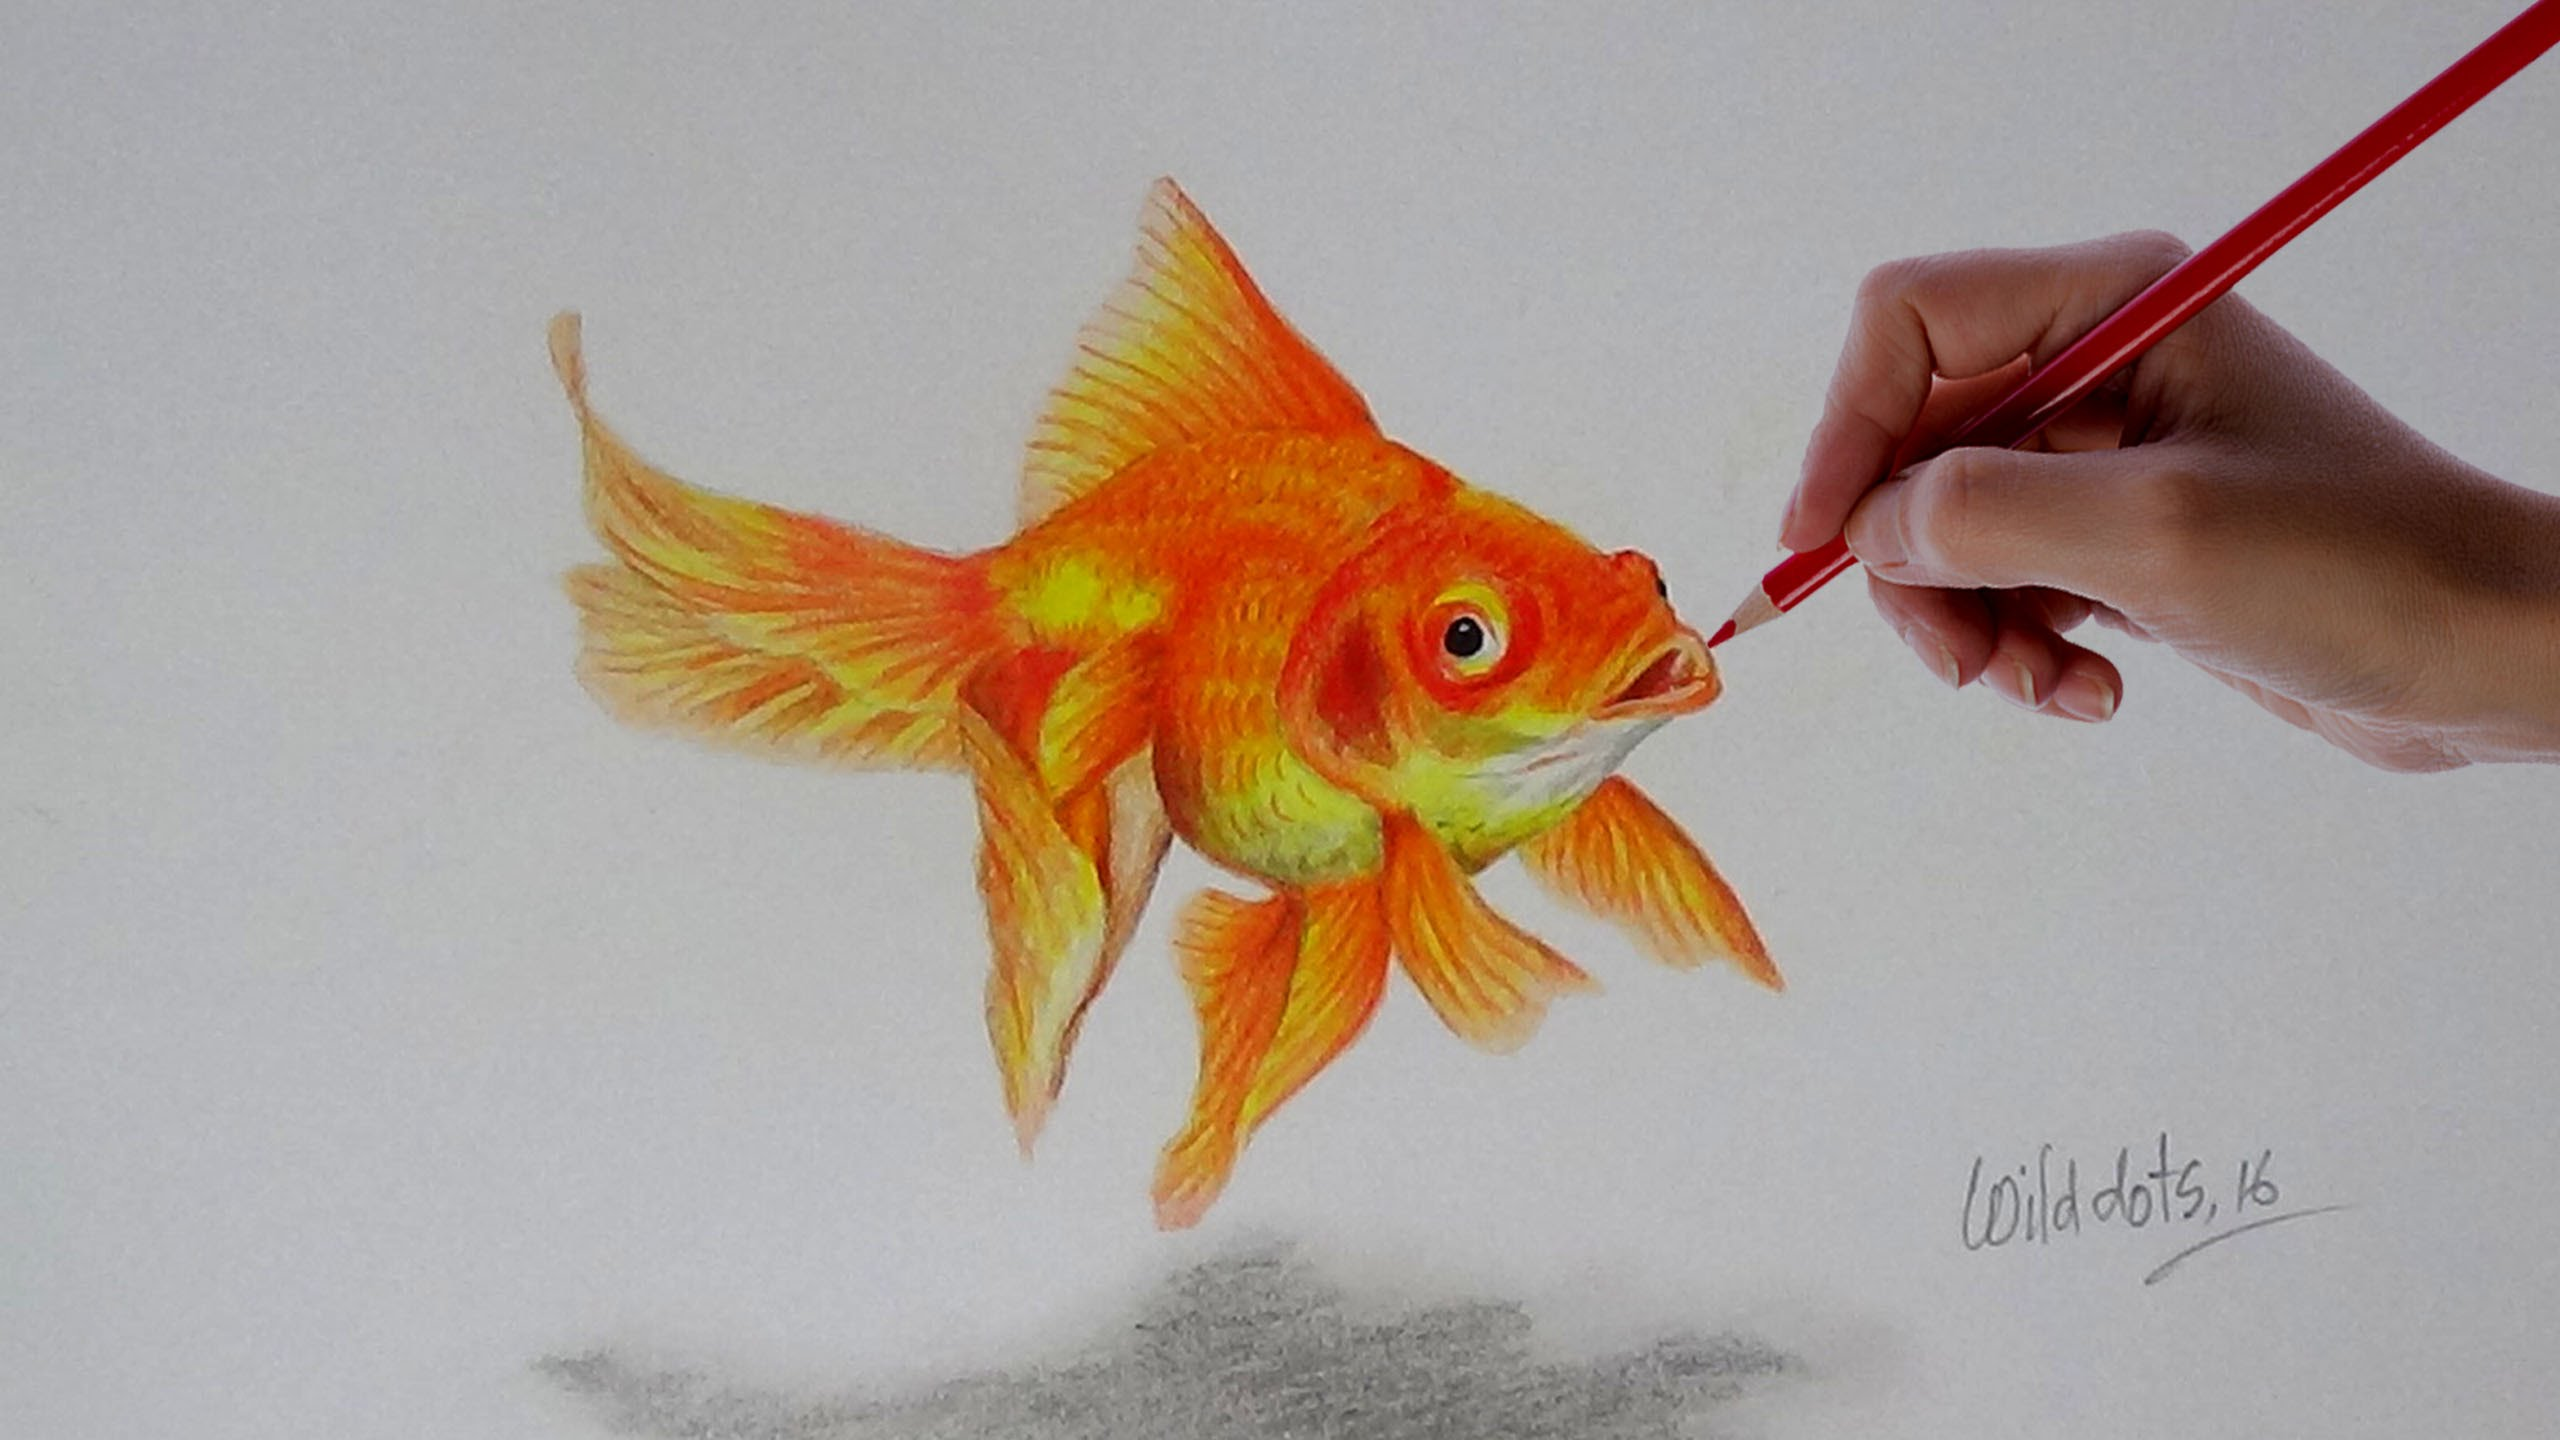 Drawn gold fish Colored Realistic Simple With Drawing